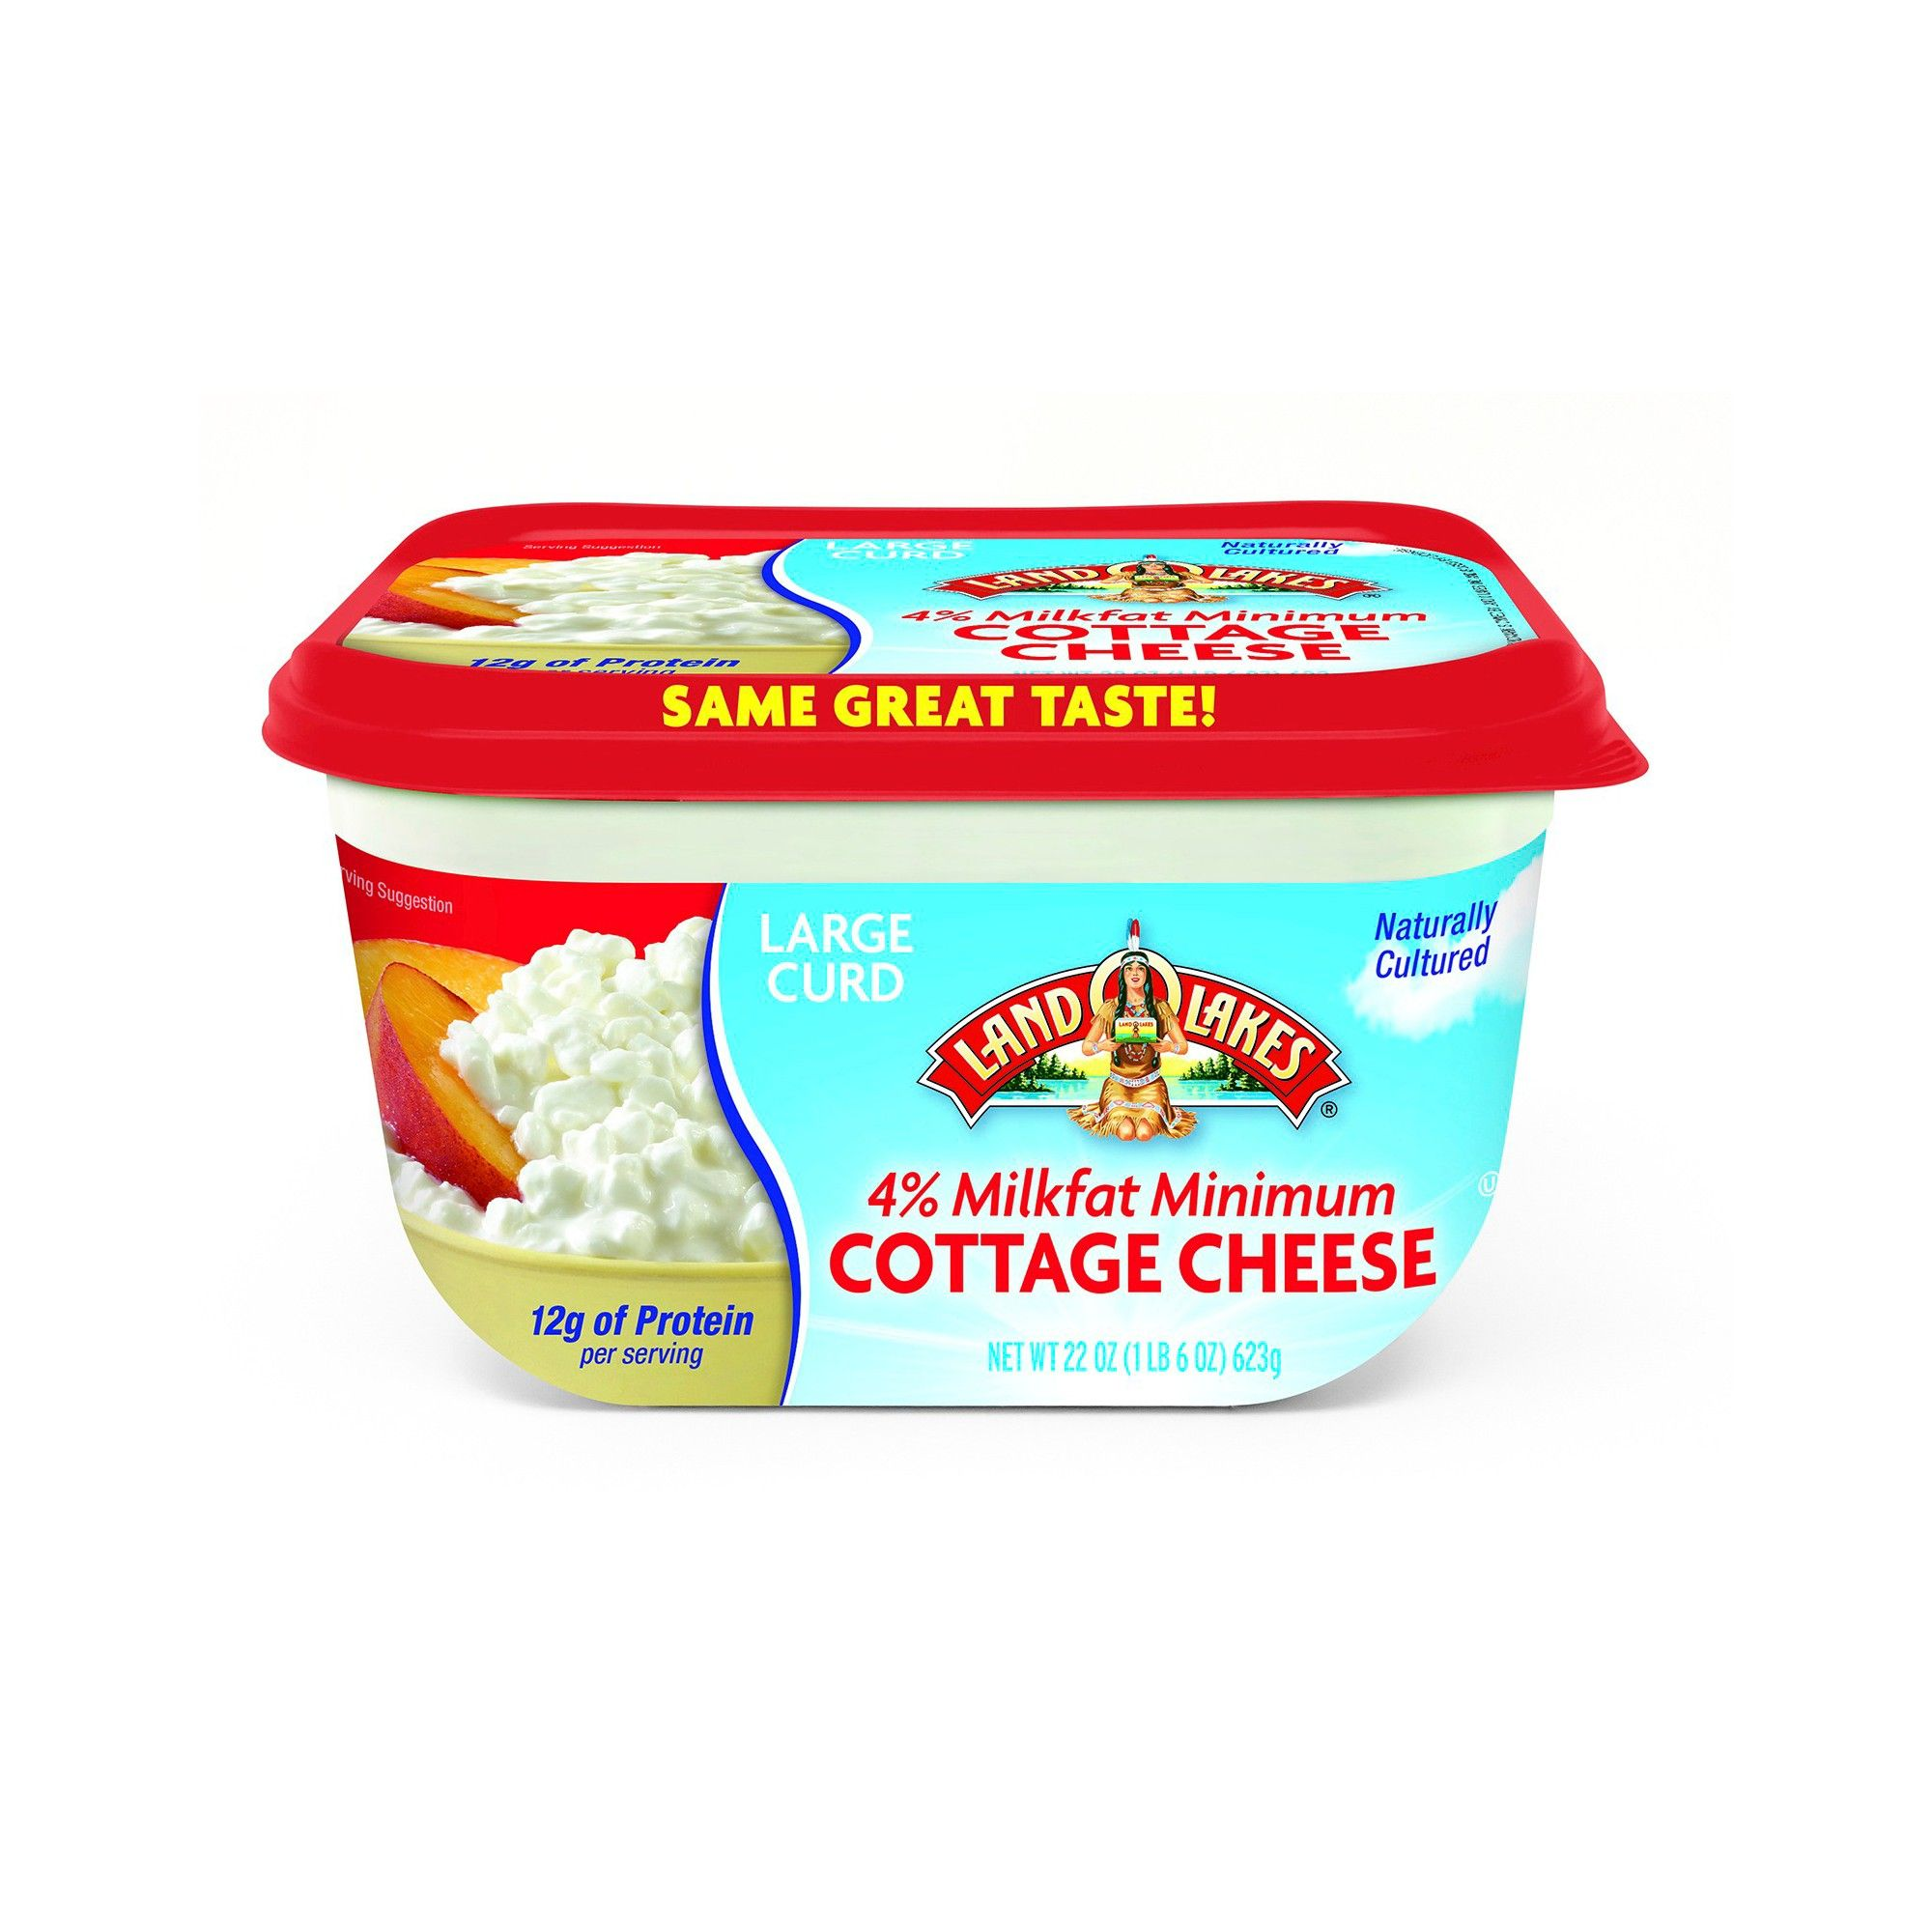 Dean S Large Curd Cottage Cheese 4 Milkfat Minimum 24oz In 2020 Cottage Cheese Curd Local Dairy